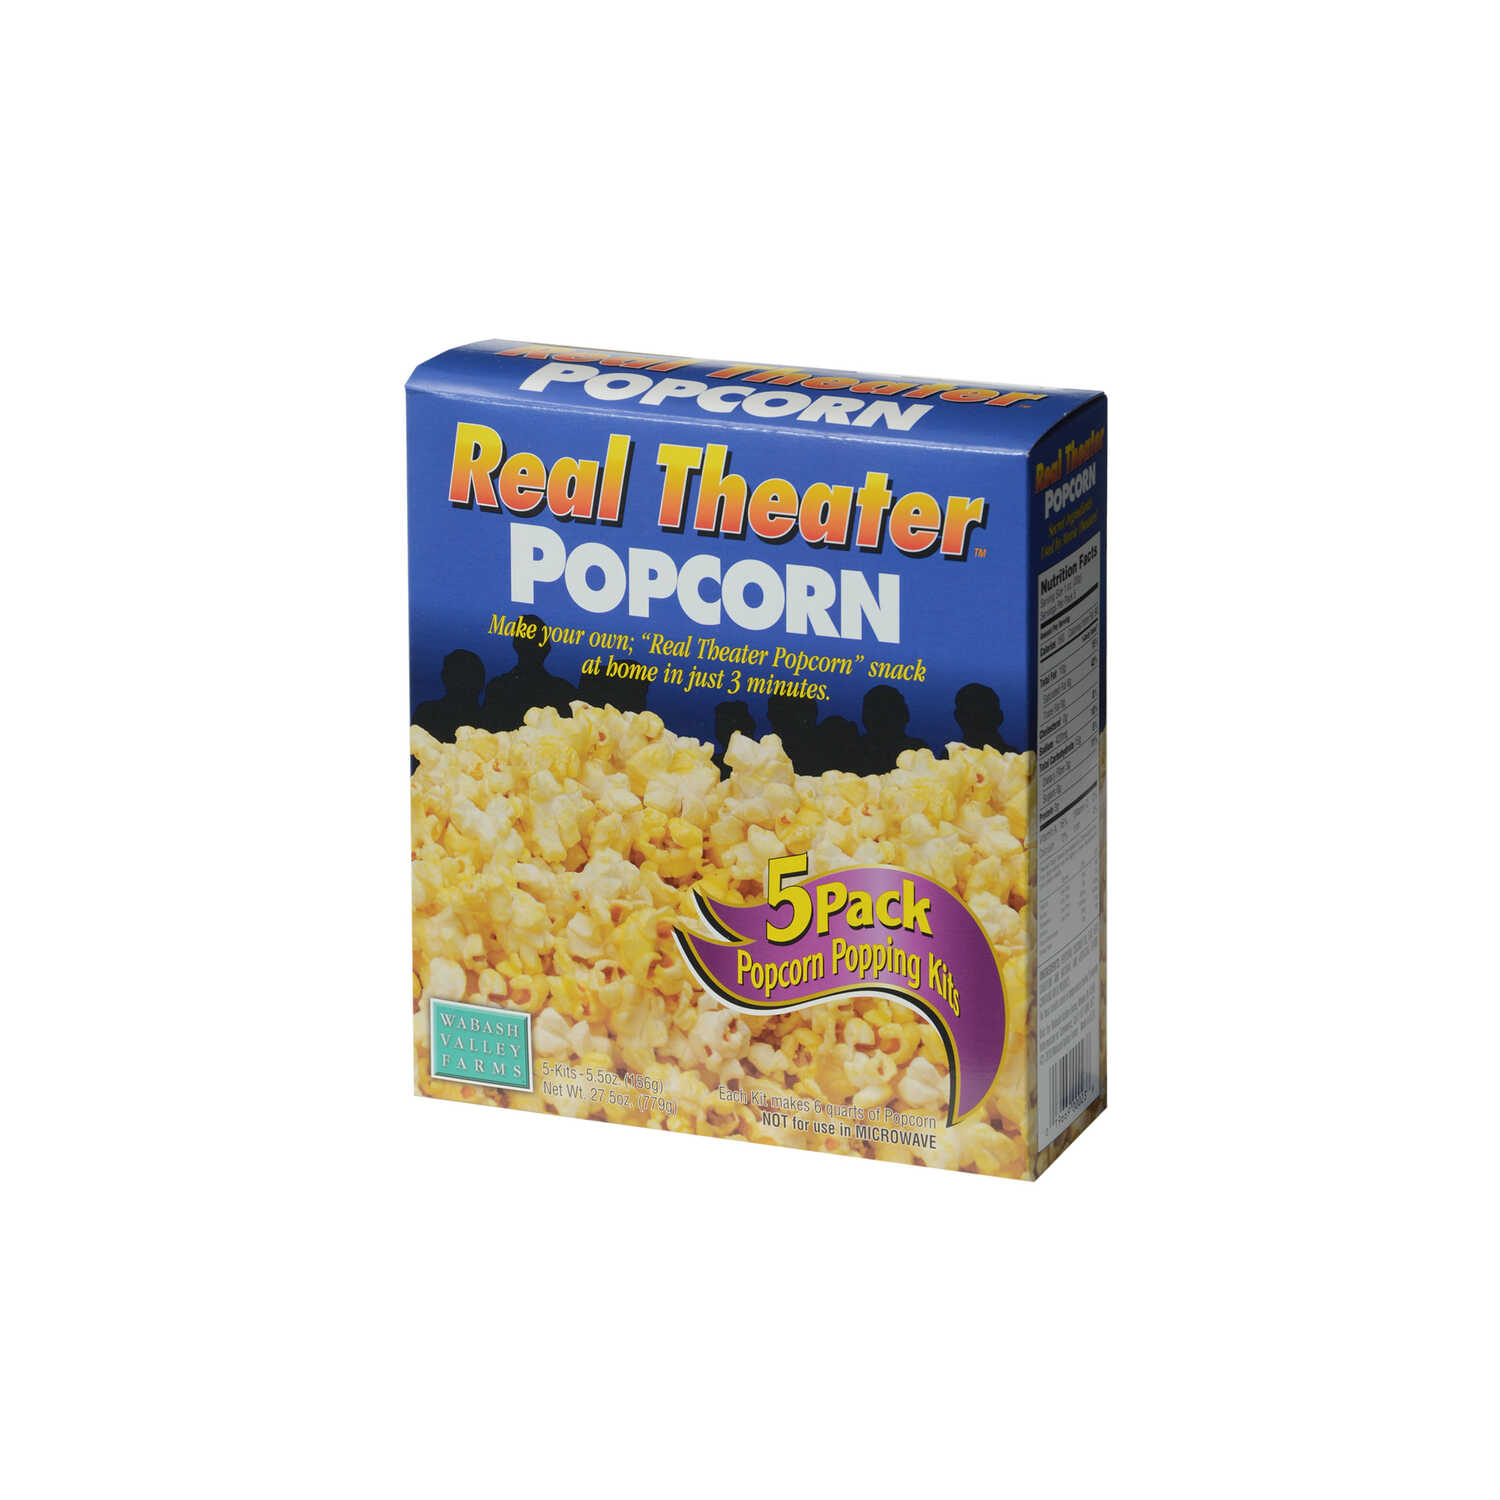 Whirley Pop  Real Theater  Movie Theater Butter  Popcorn  27.5oz.  Boxed